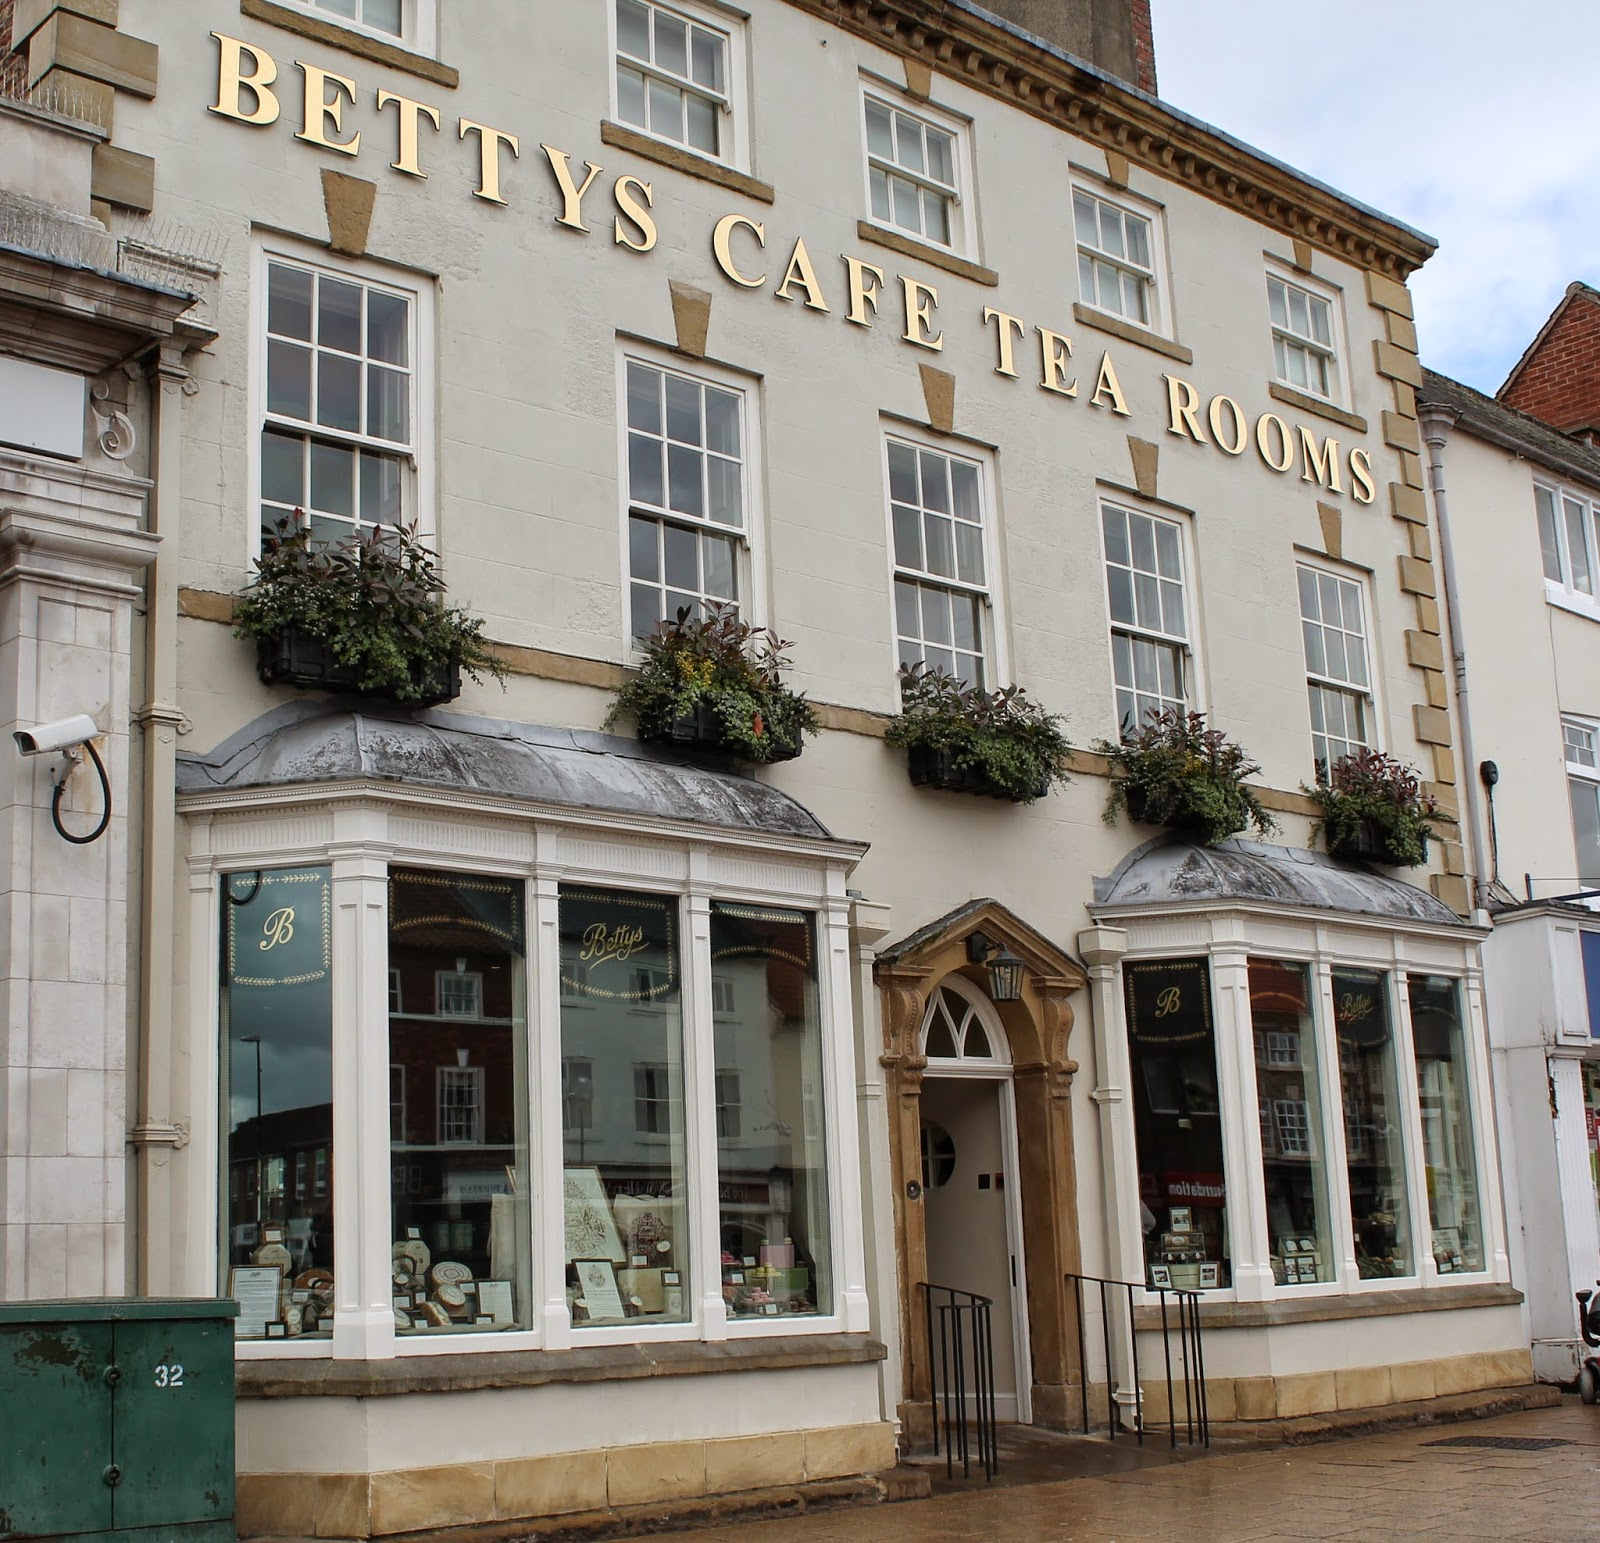 Betty's Cafe Tea Rooms Northallerton Review - North East - Afternoon Tea